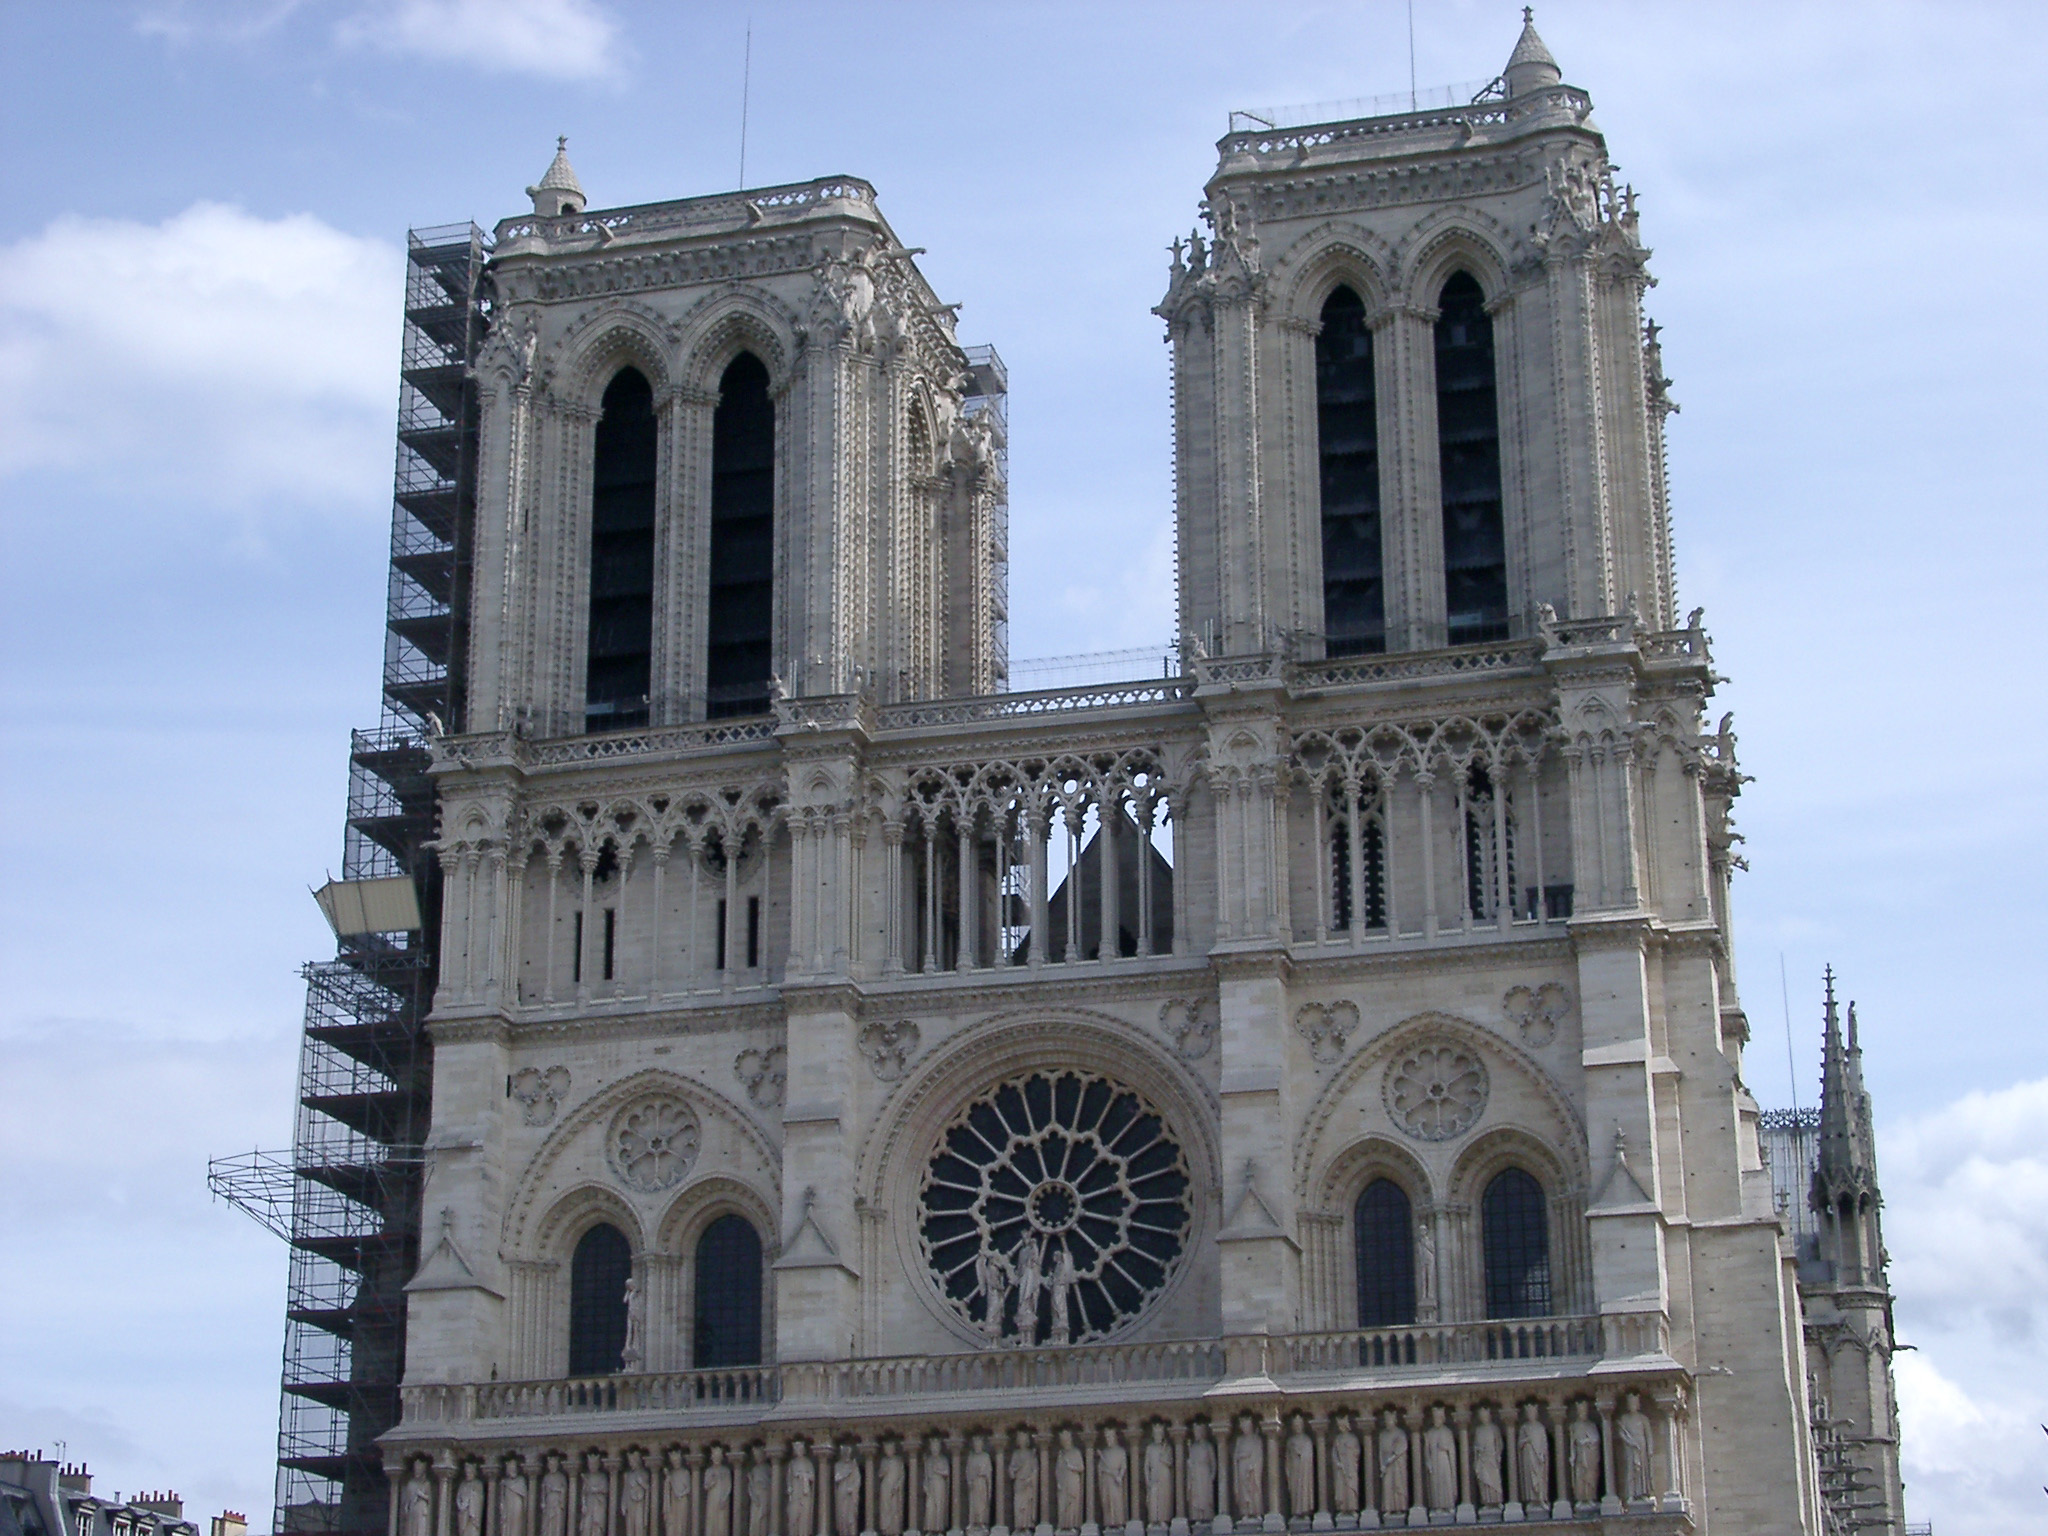 View of the historical front facade of the Notre Dame Cathedral in Paris, France against a blue sky